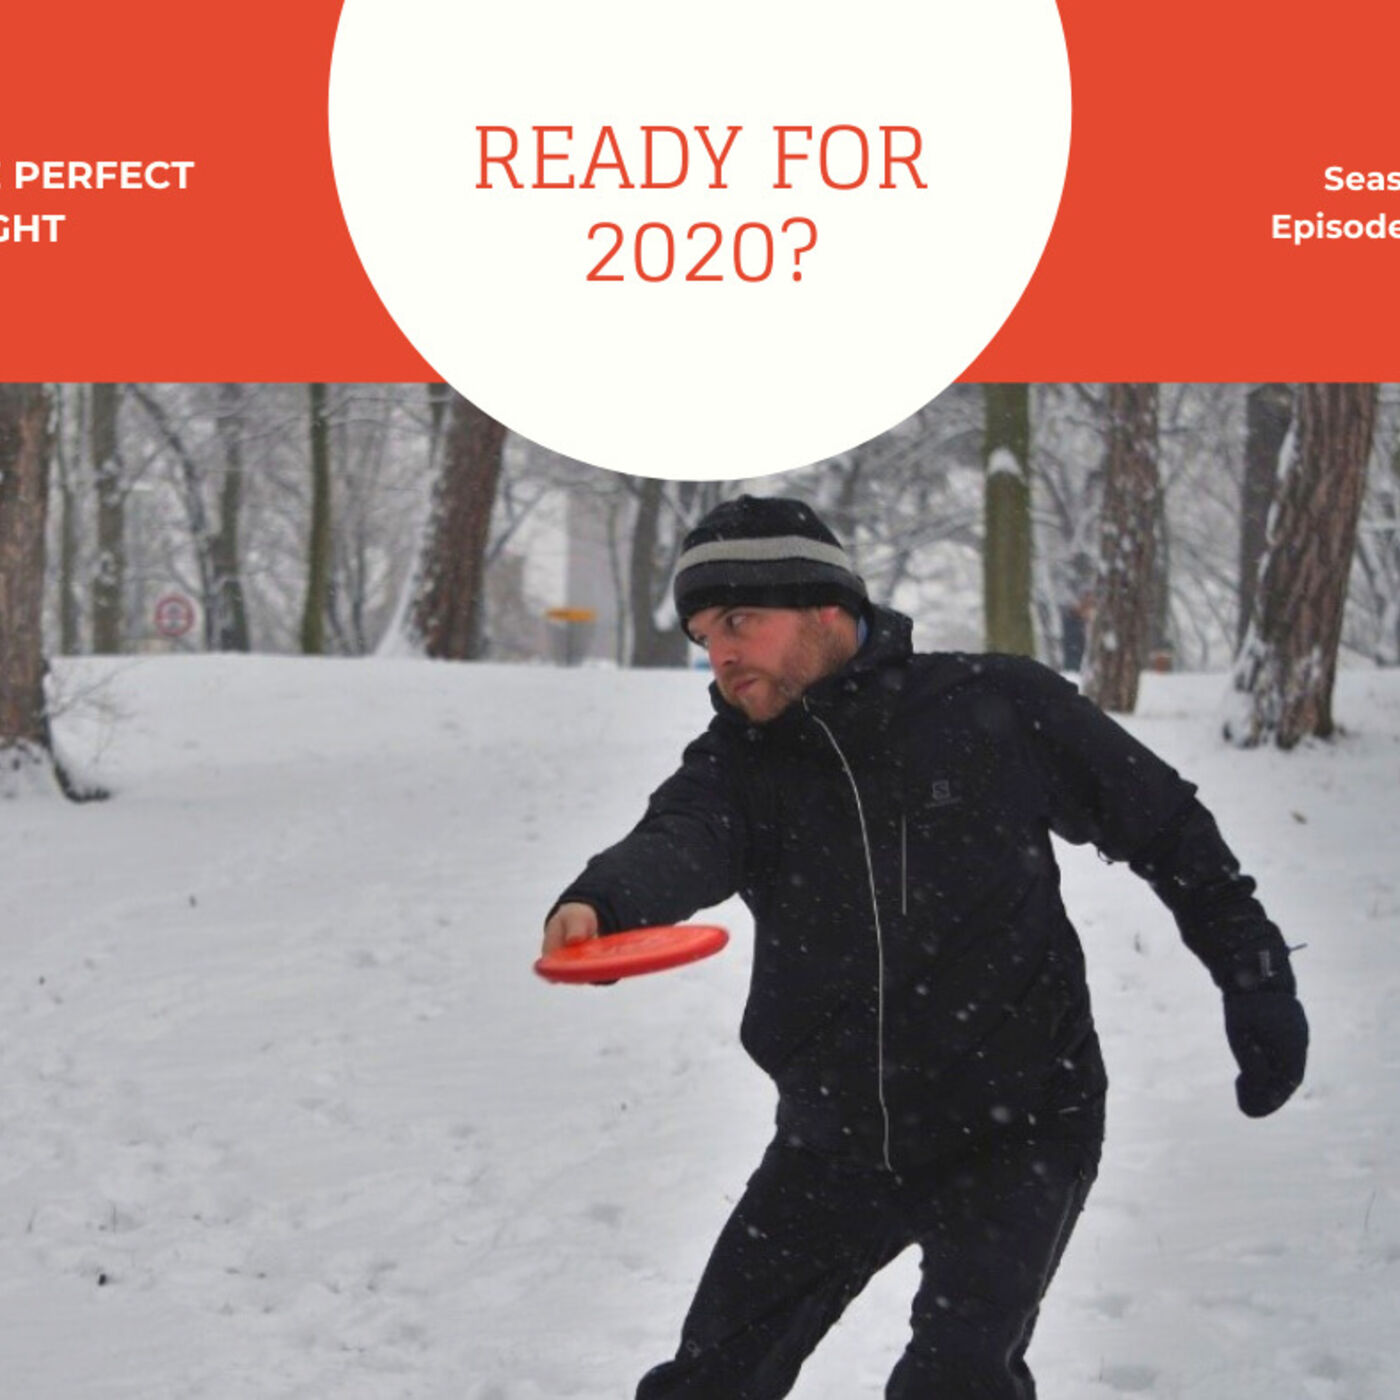 #14 - Ready for 2020?